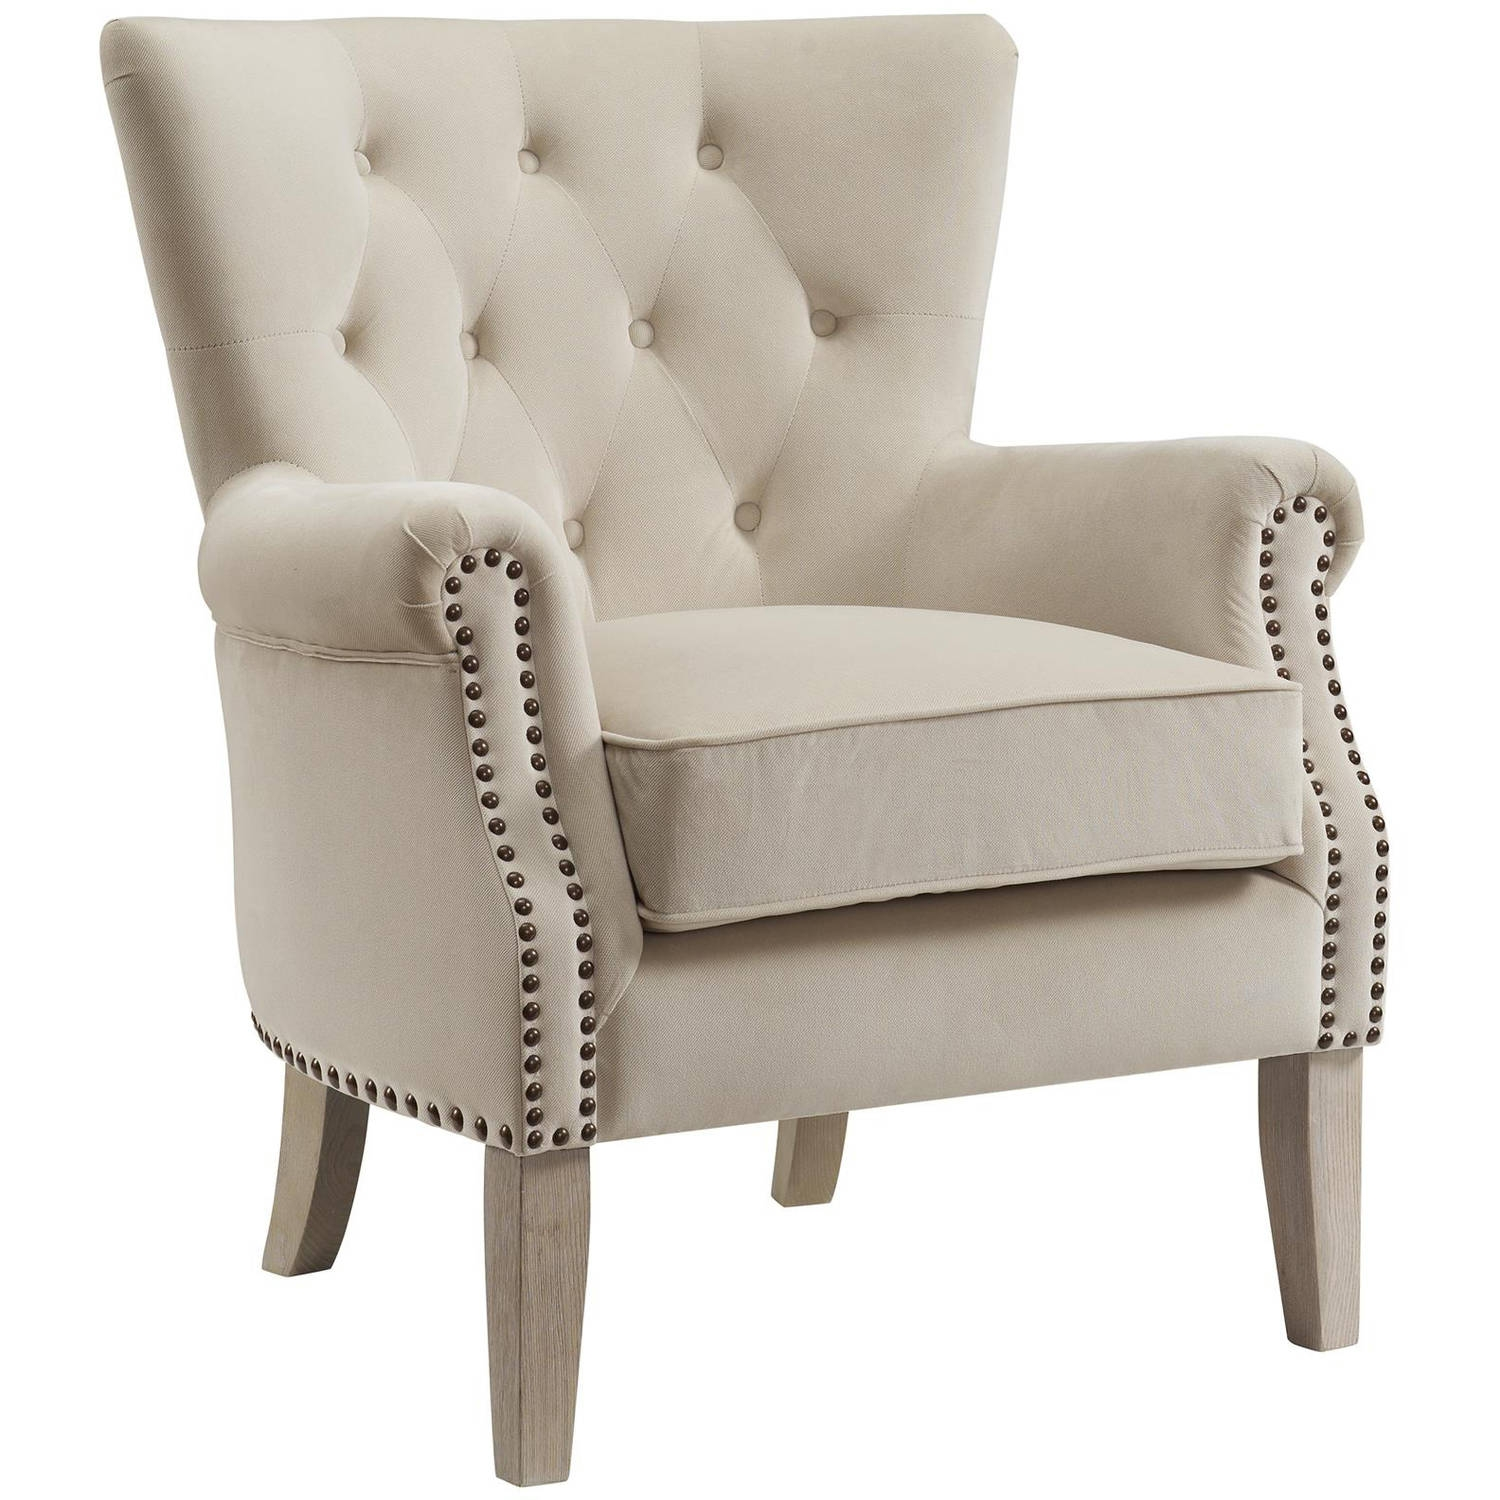 Living Room Furniture Walmart With Regard To Living Room Sofa Chairs (Image 3 of 15)